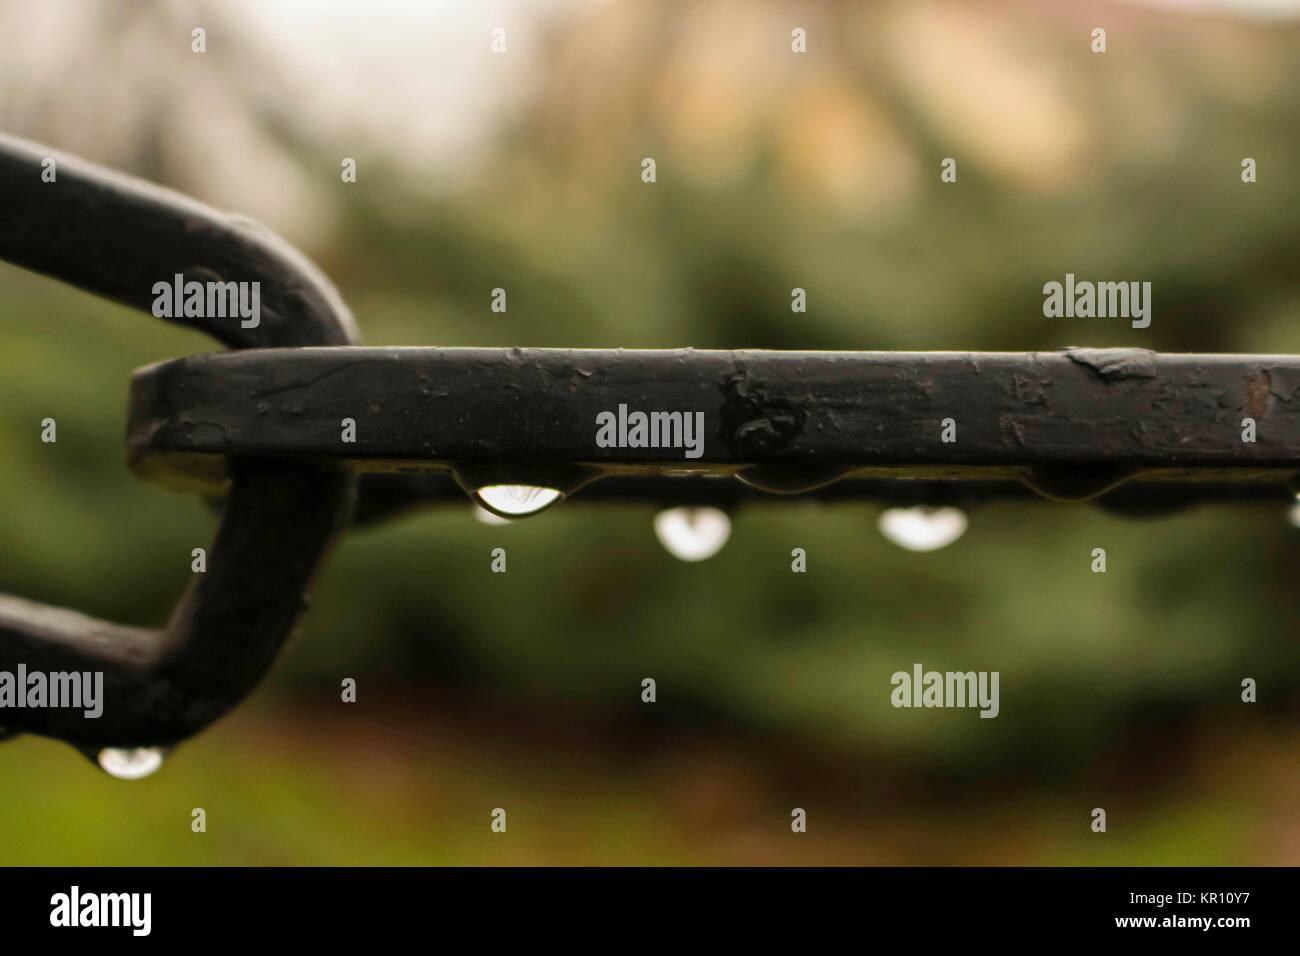 An iron black chain wet and blur - Stock Image